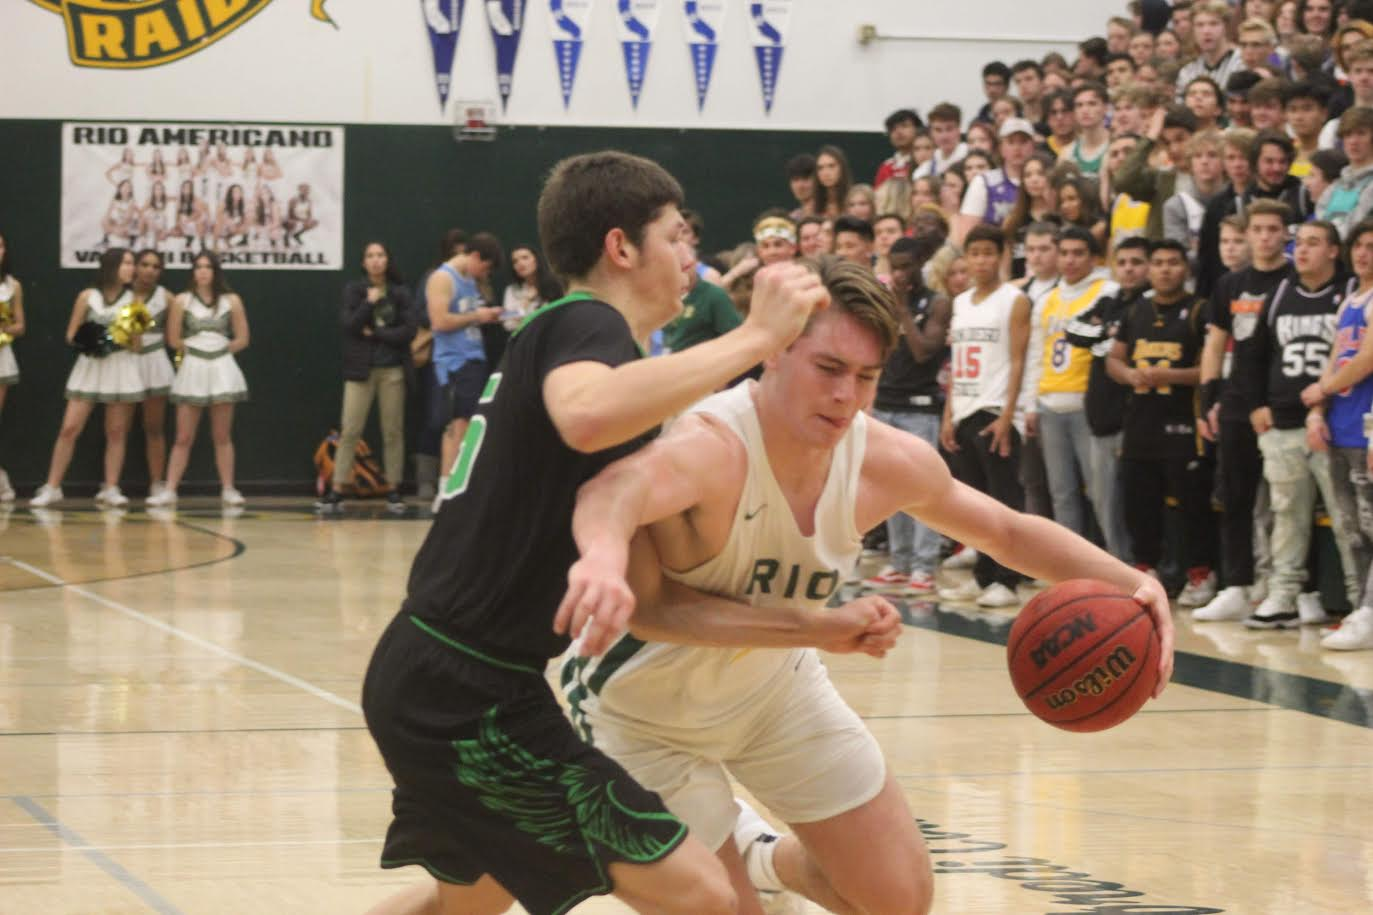 Mitchell Dixon protects the ball against an El Camino player